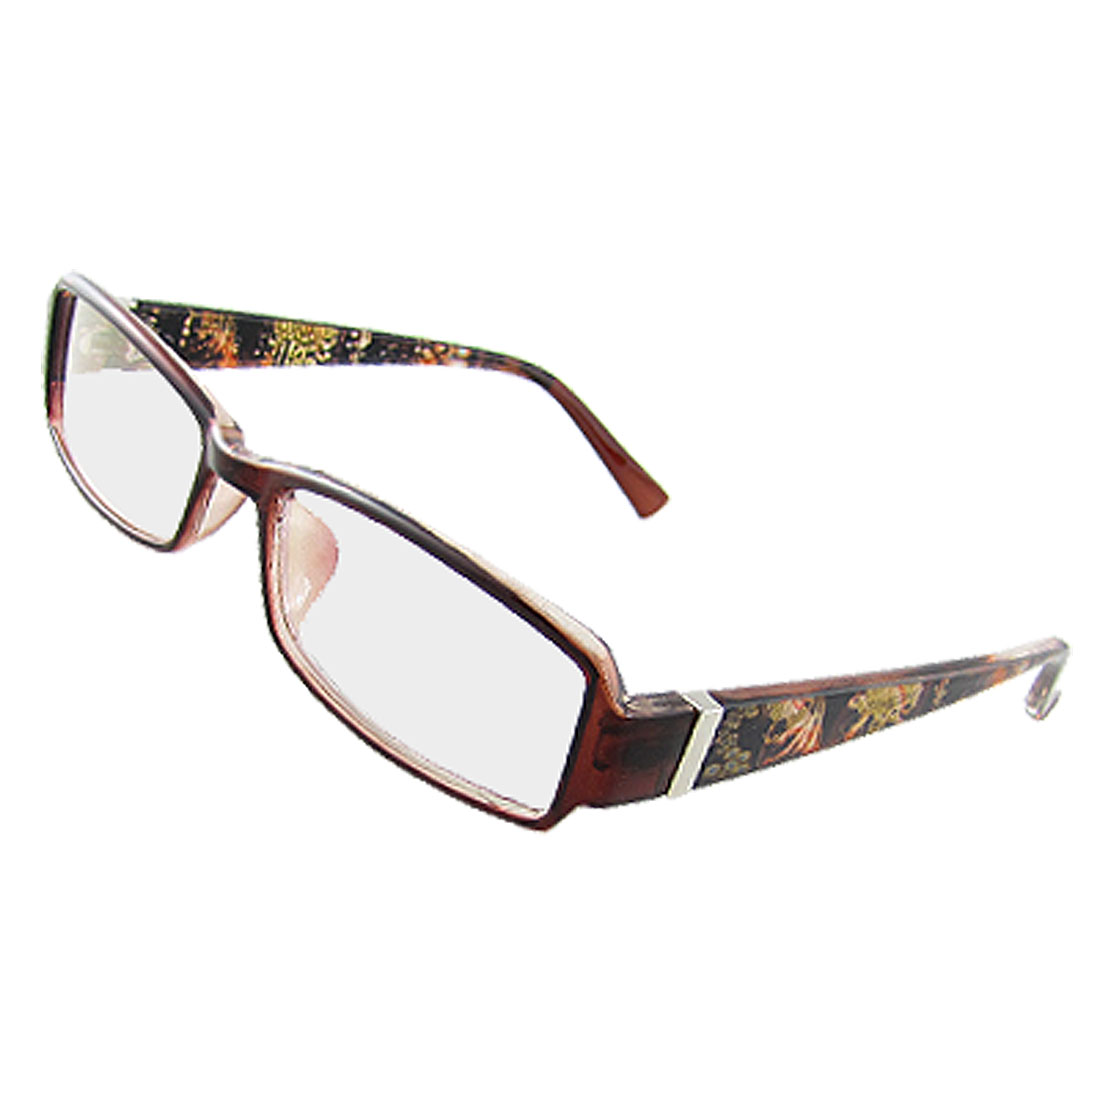 Floral Accent Hinged Arms Multi Coated Lens Lady Plain Glasses